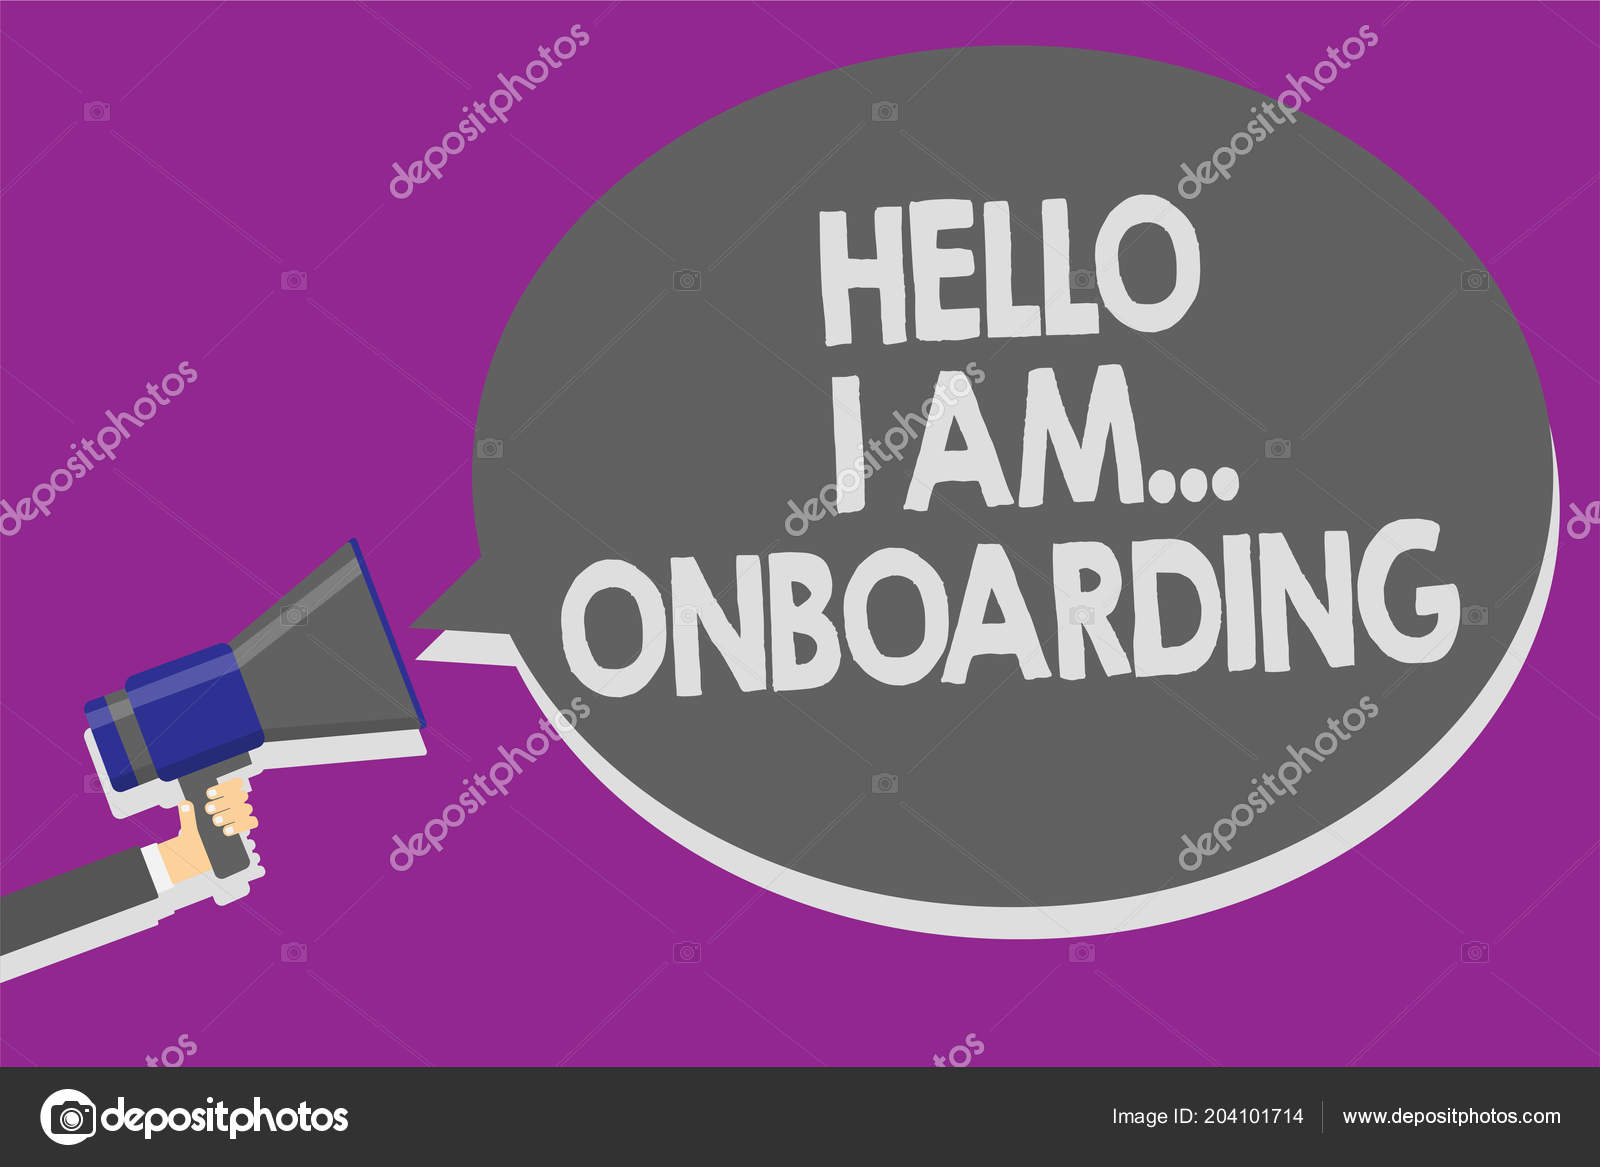 Handwriting Text Hello Onboarding Concept Meaning Telling Person You